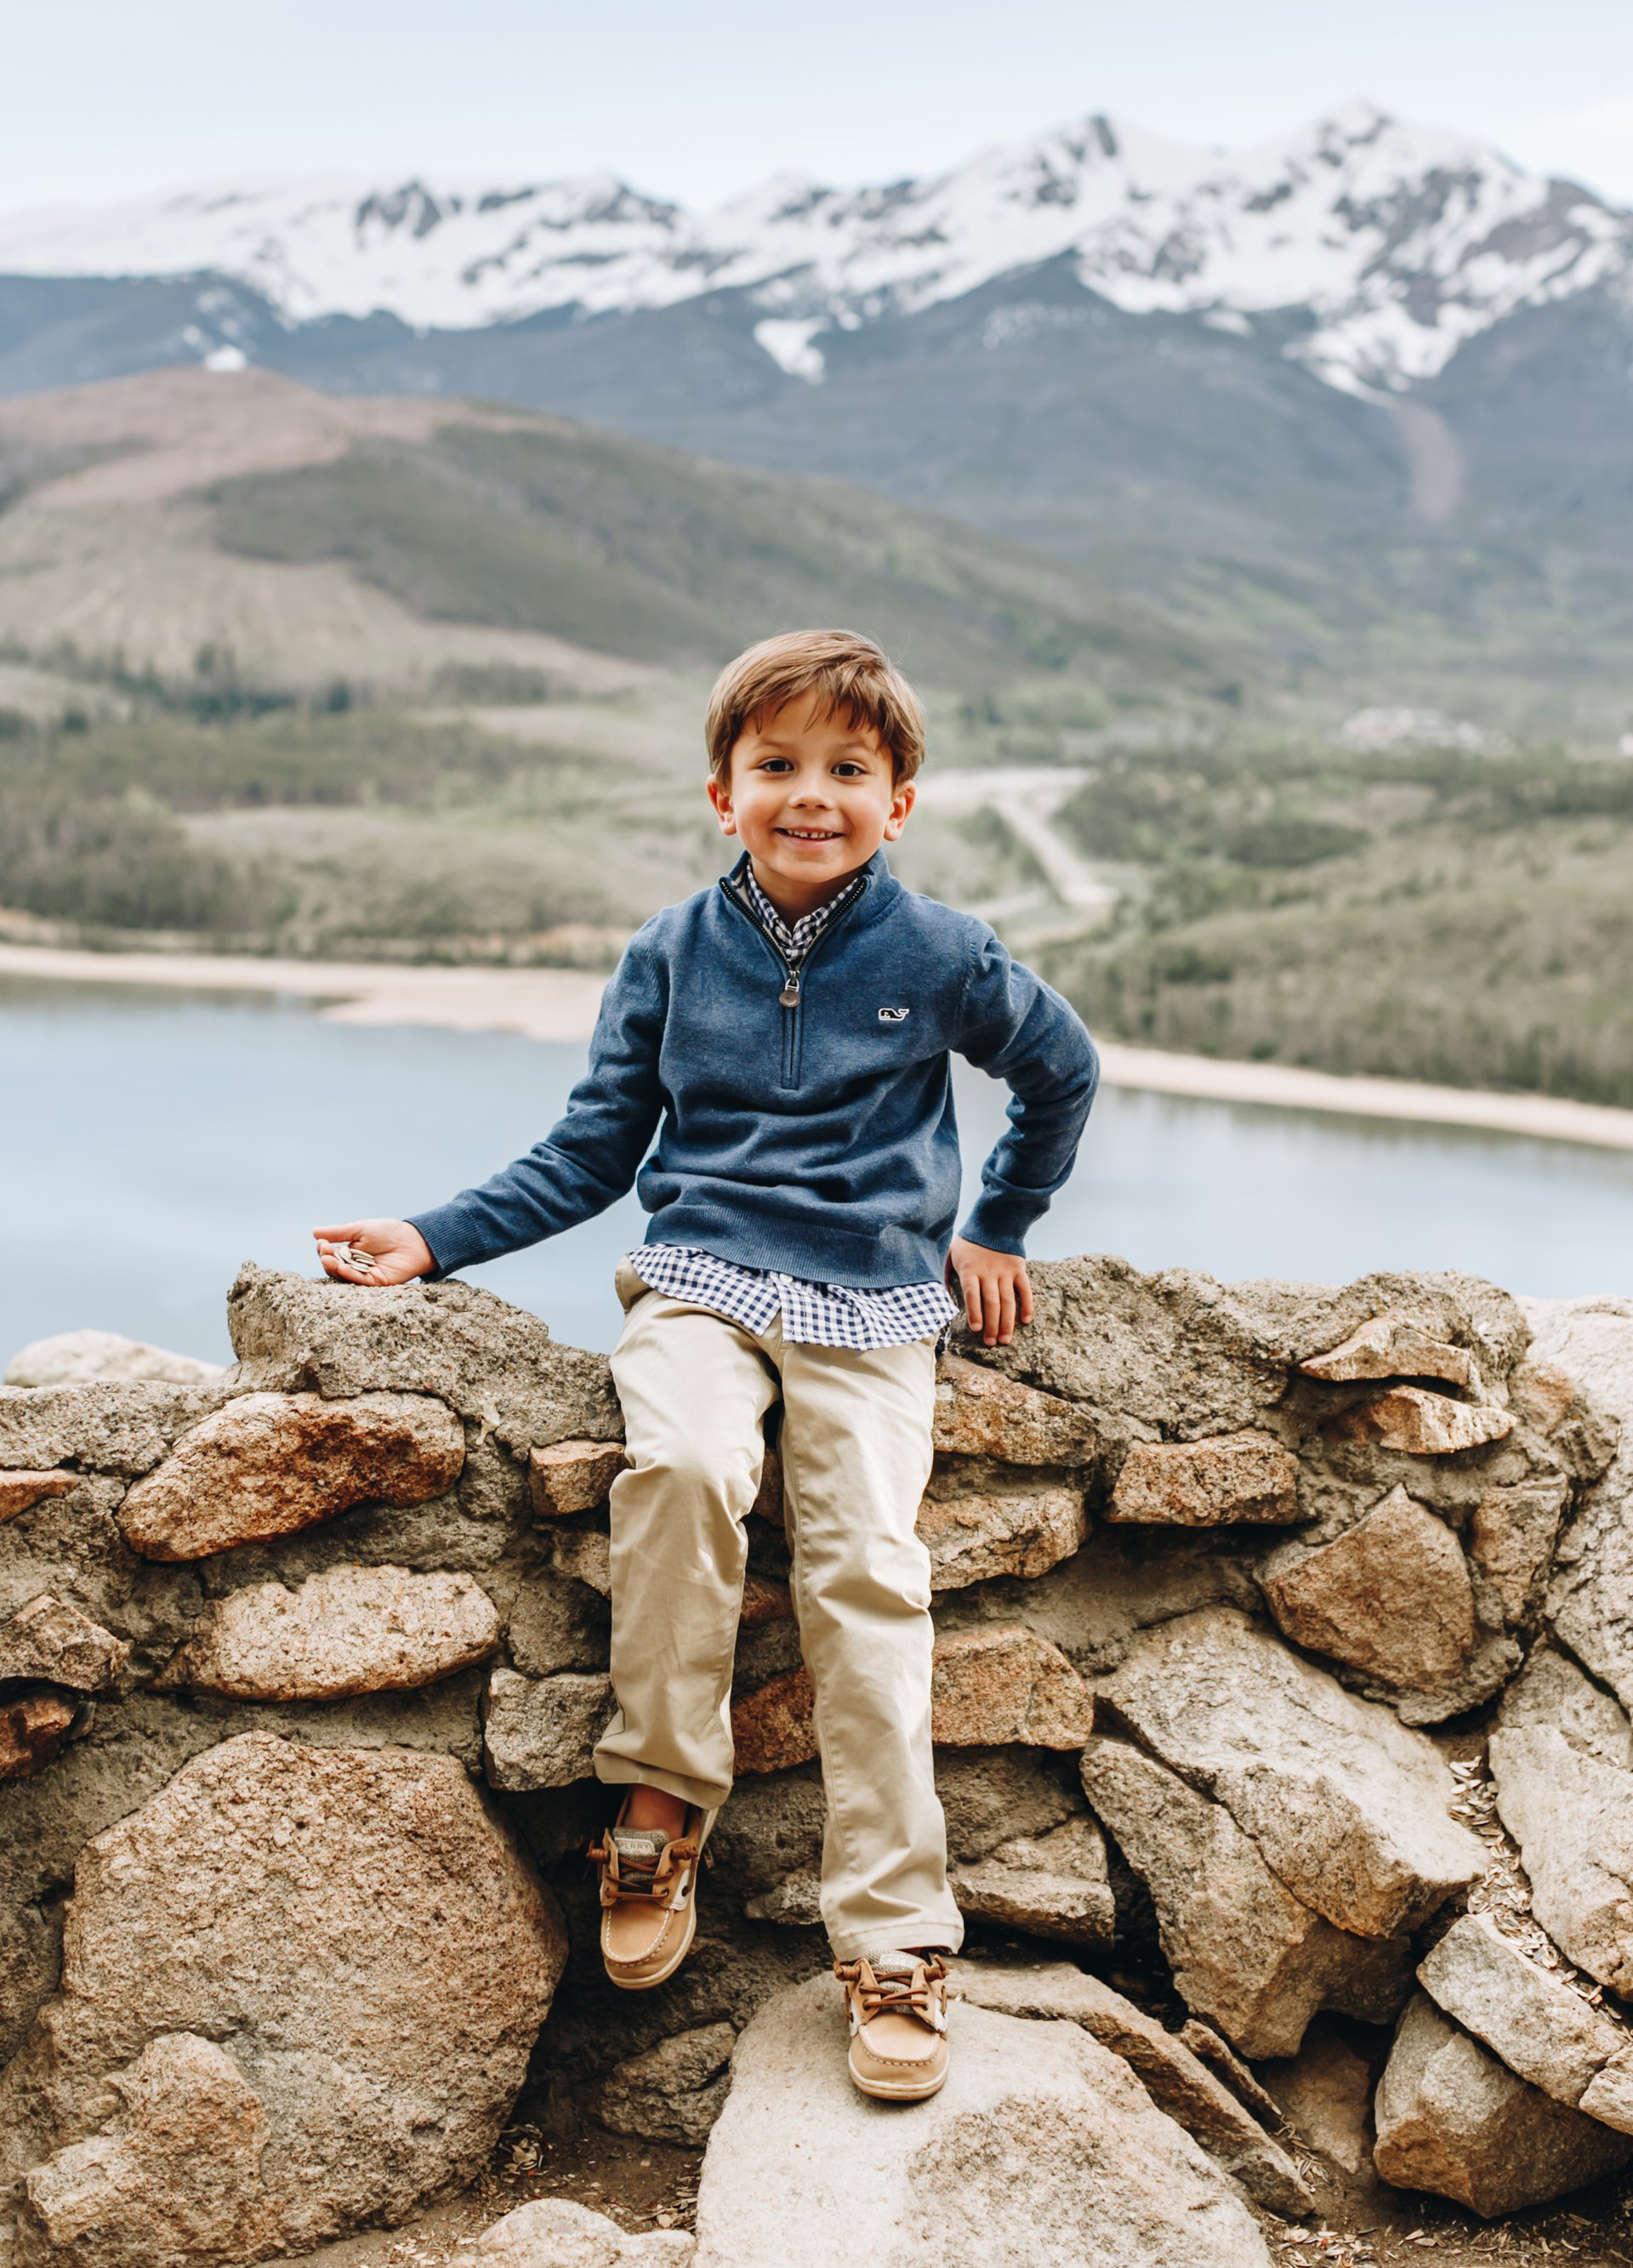 Breckenridge-United States-travel-story-Flytographer-16